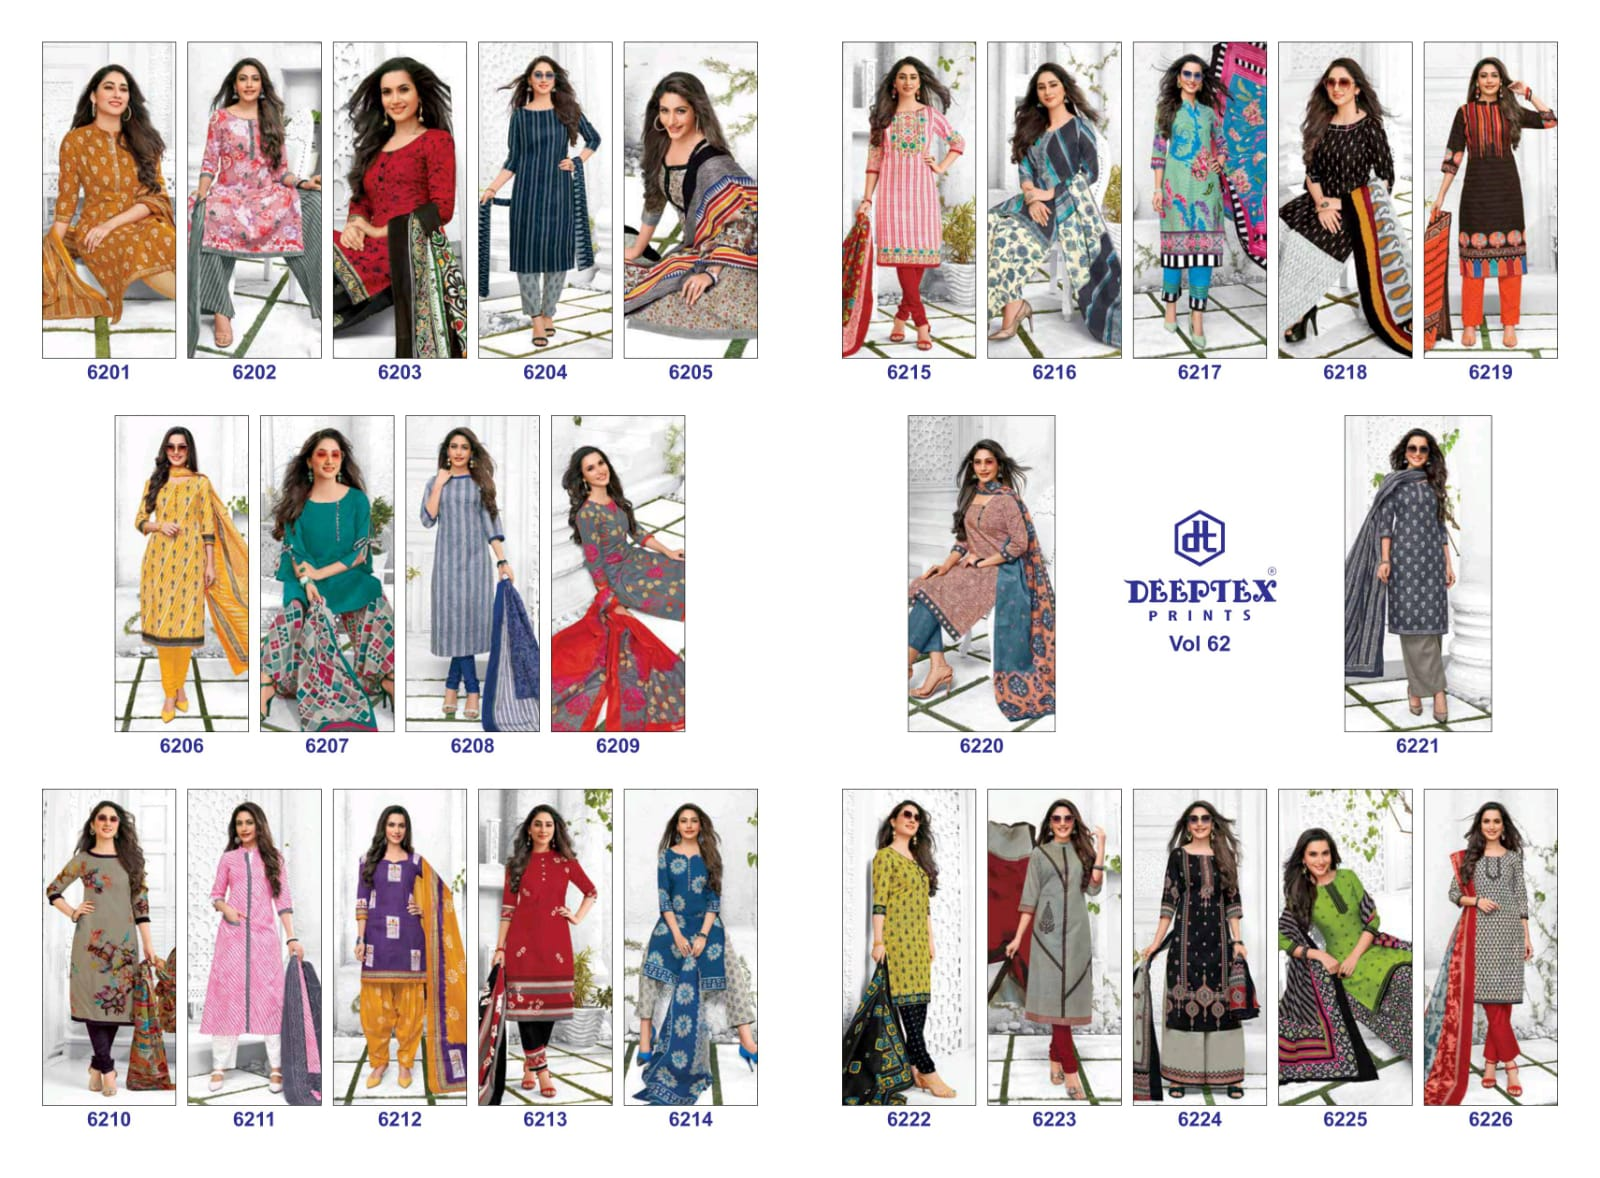 Deeptex Prints Miss India Vol 62 Cotton Printed Causal Wear Dress Material At Wholesale Rate